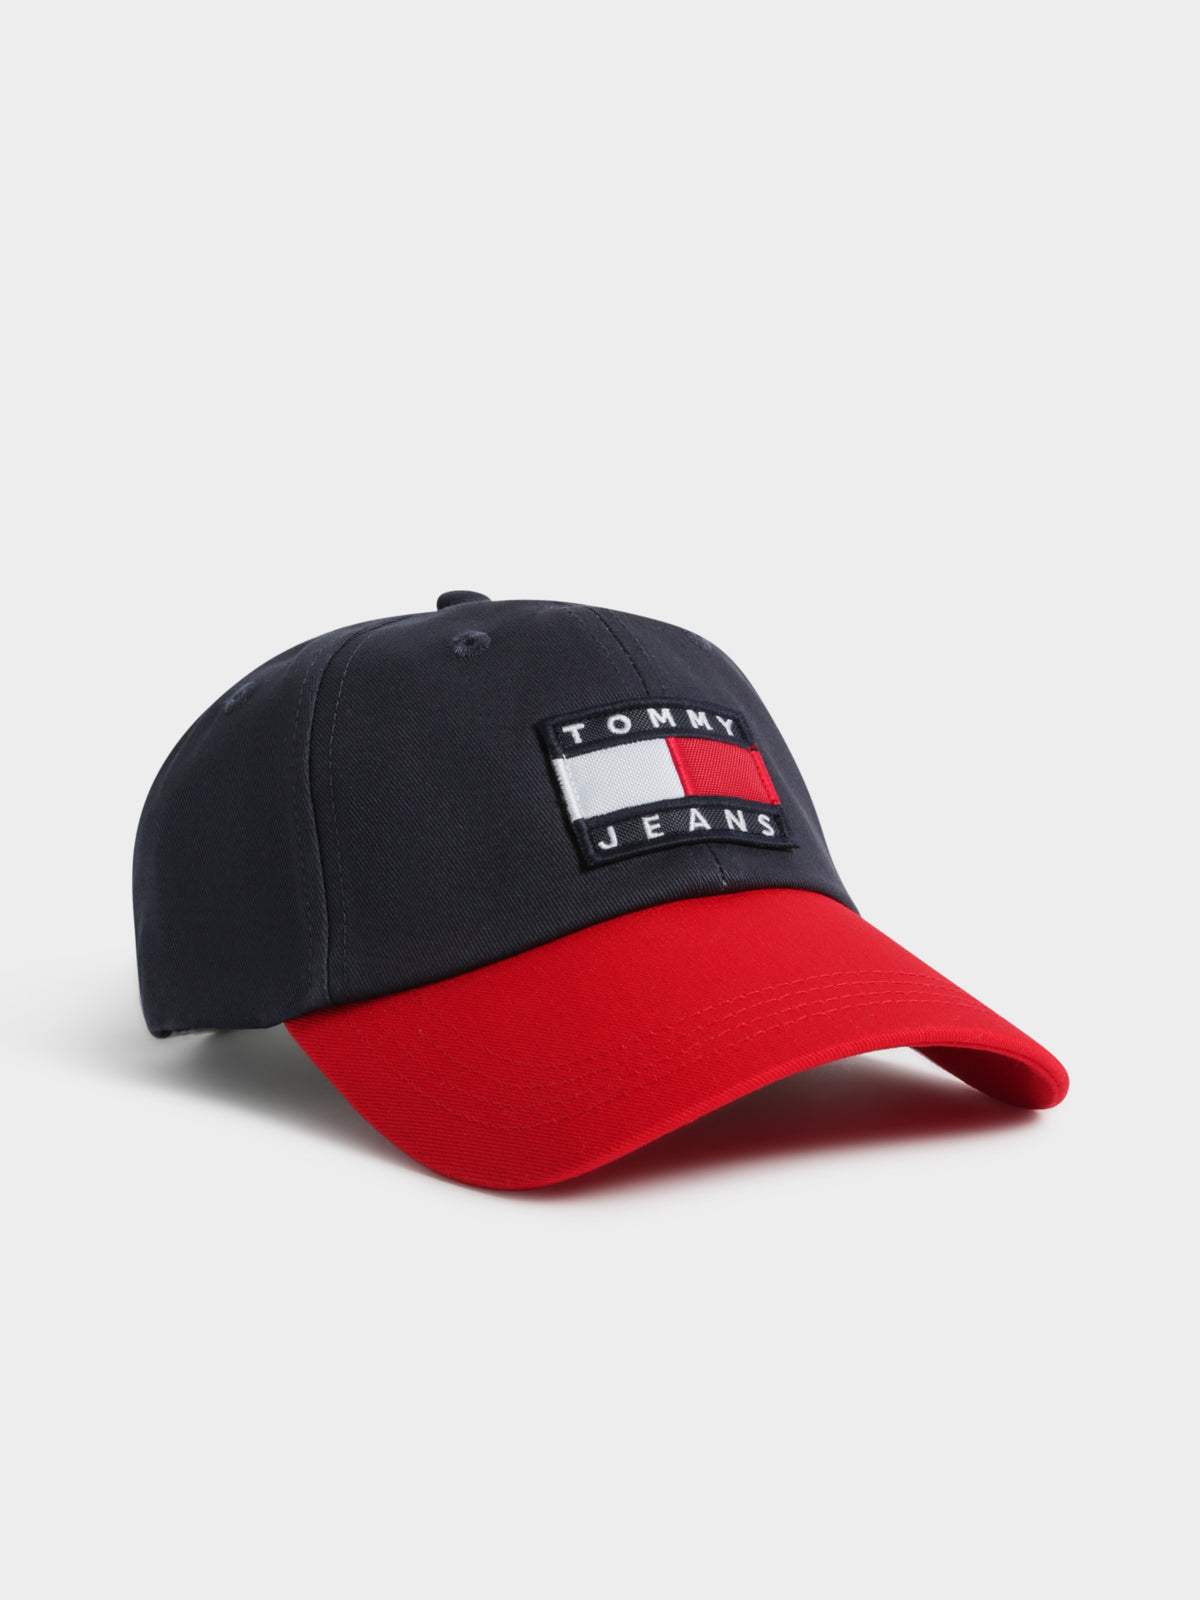 Heritage Baseball Cap in Navy Red & White